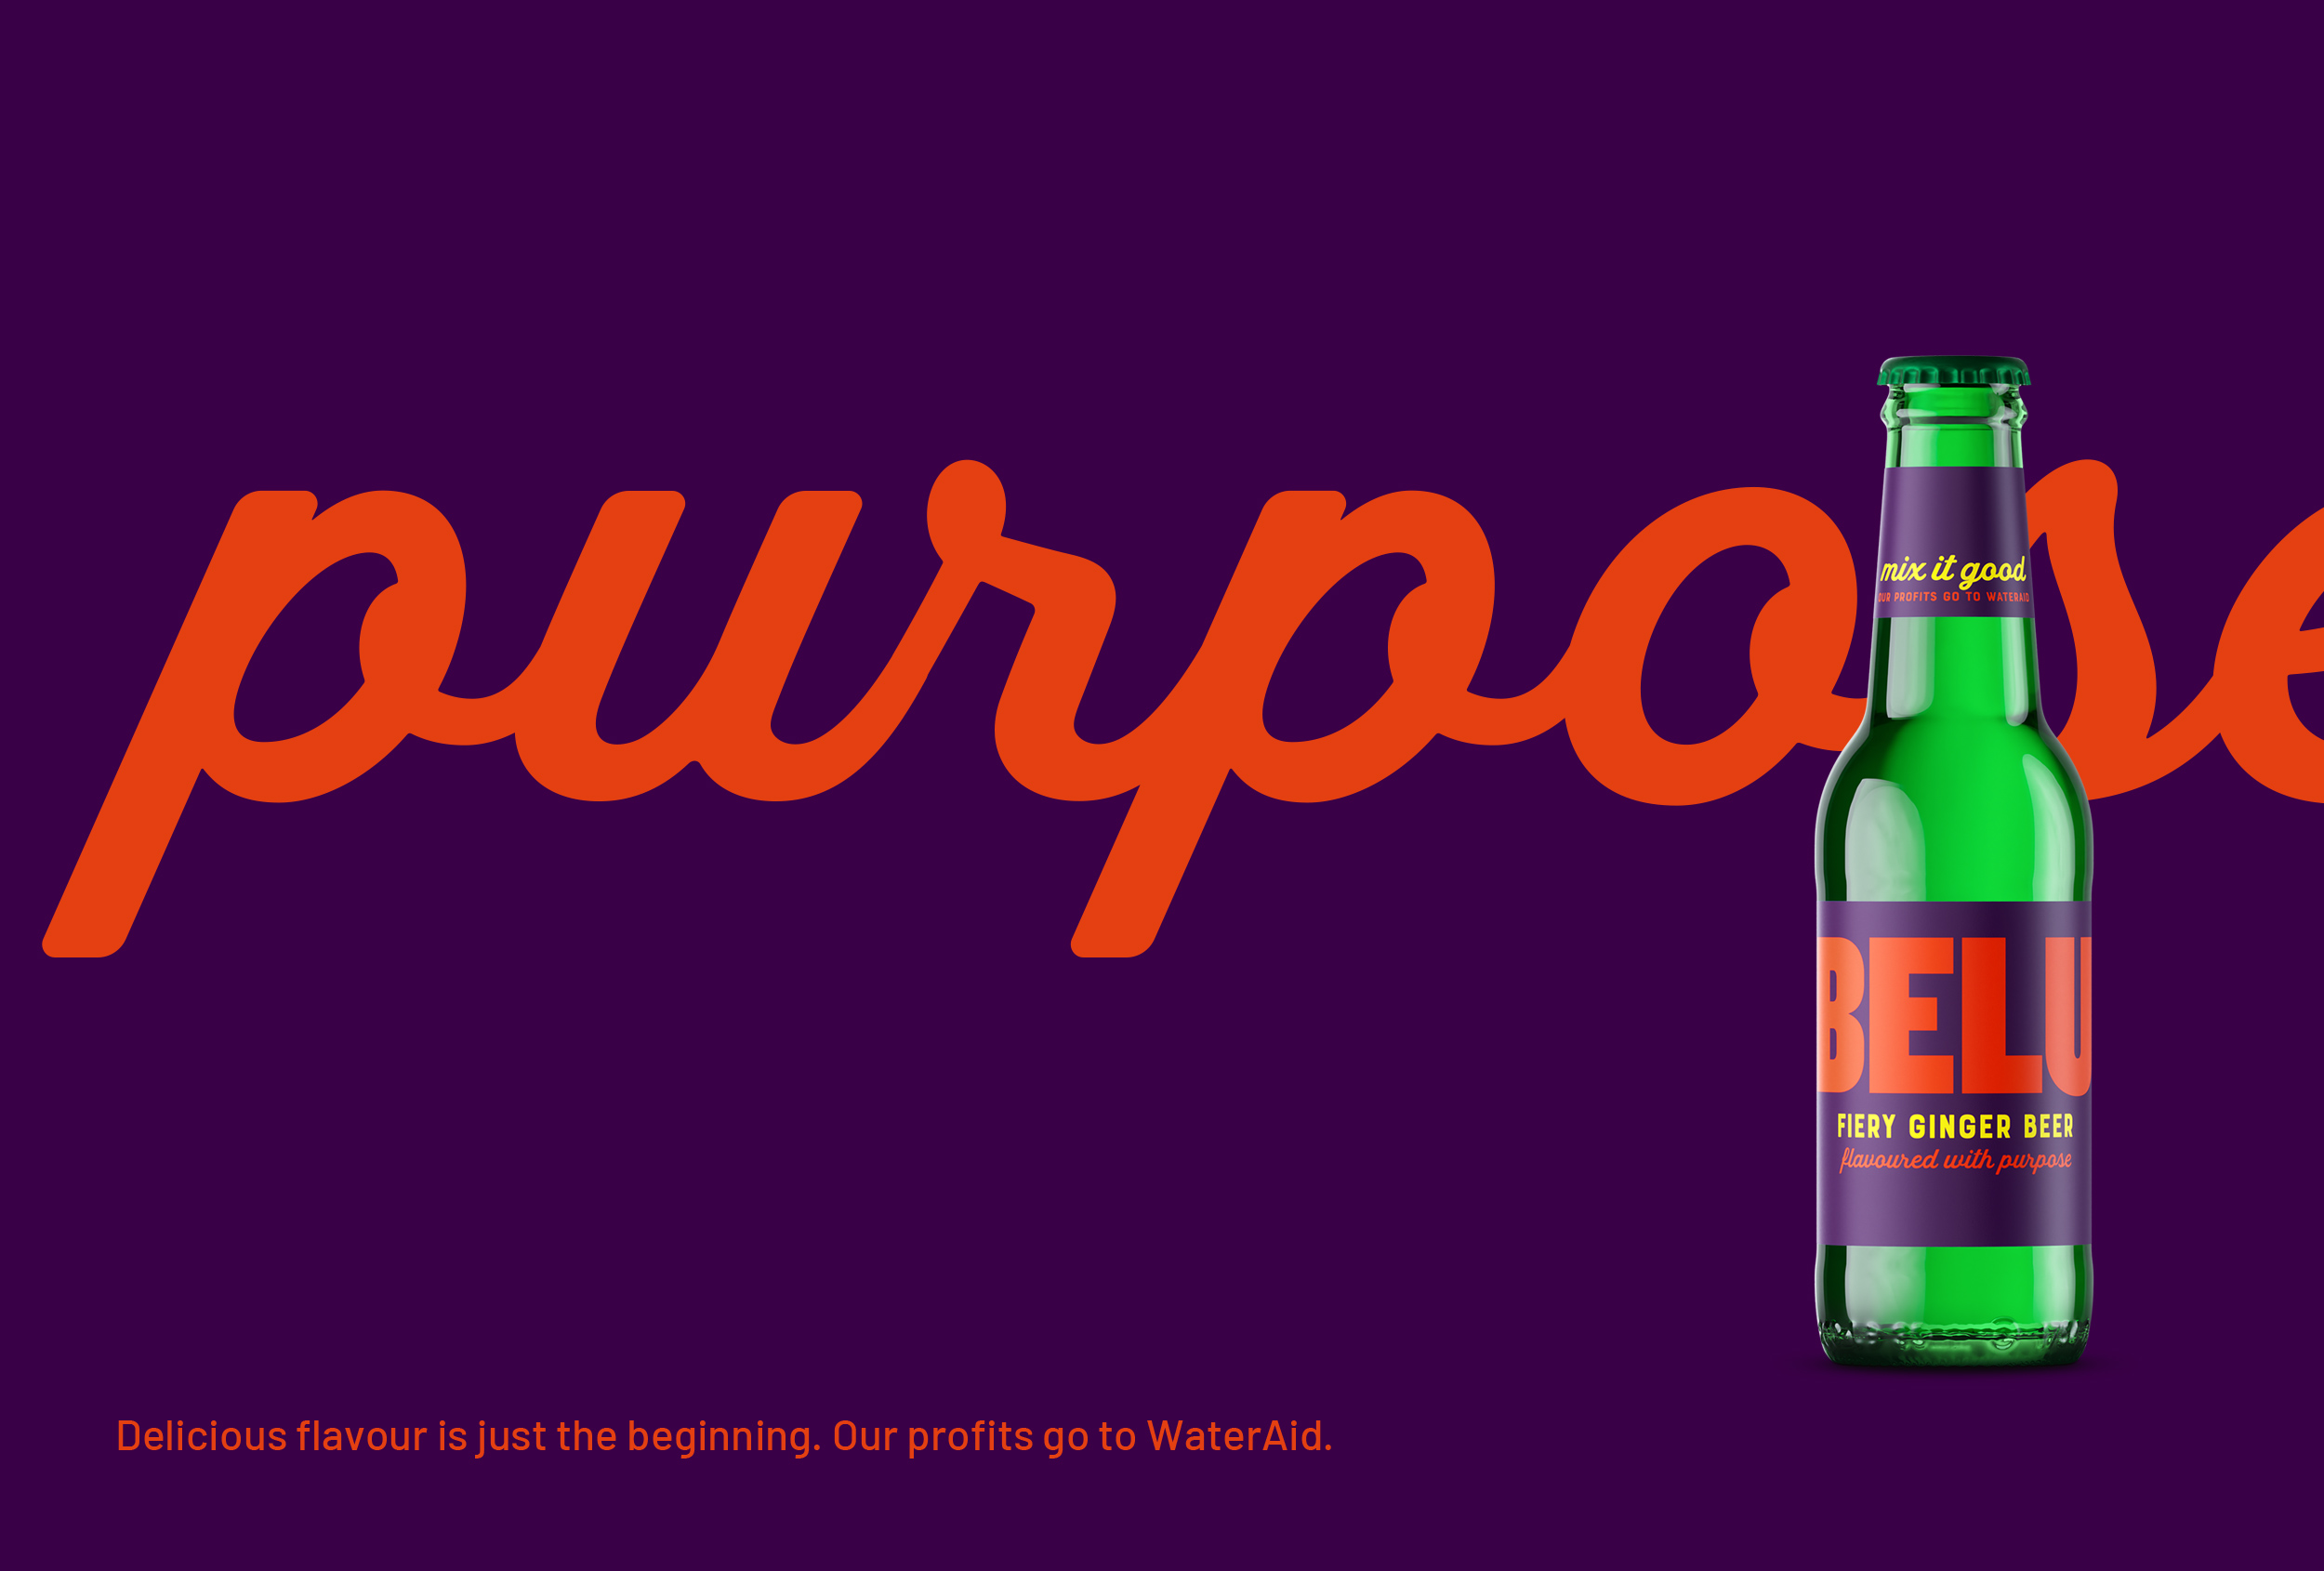 'Flavoured with purpose' – one of three straplines we created for Belu's range of mixers.